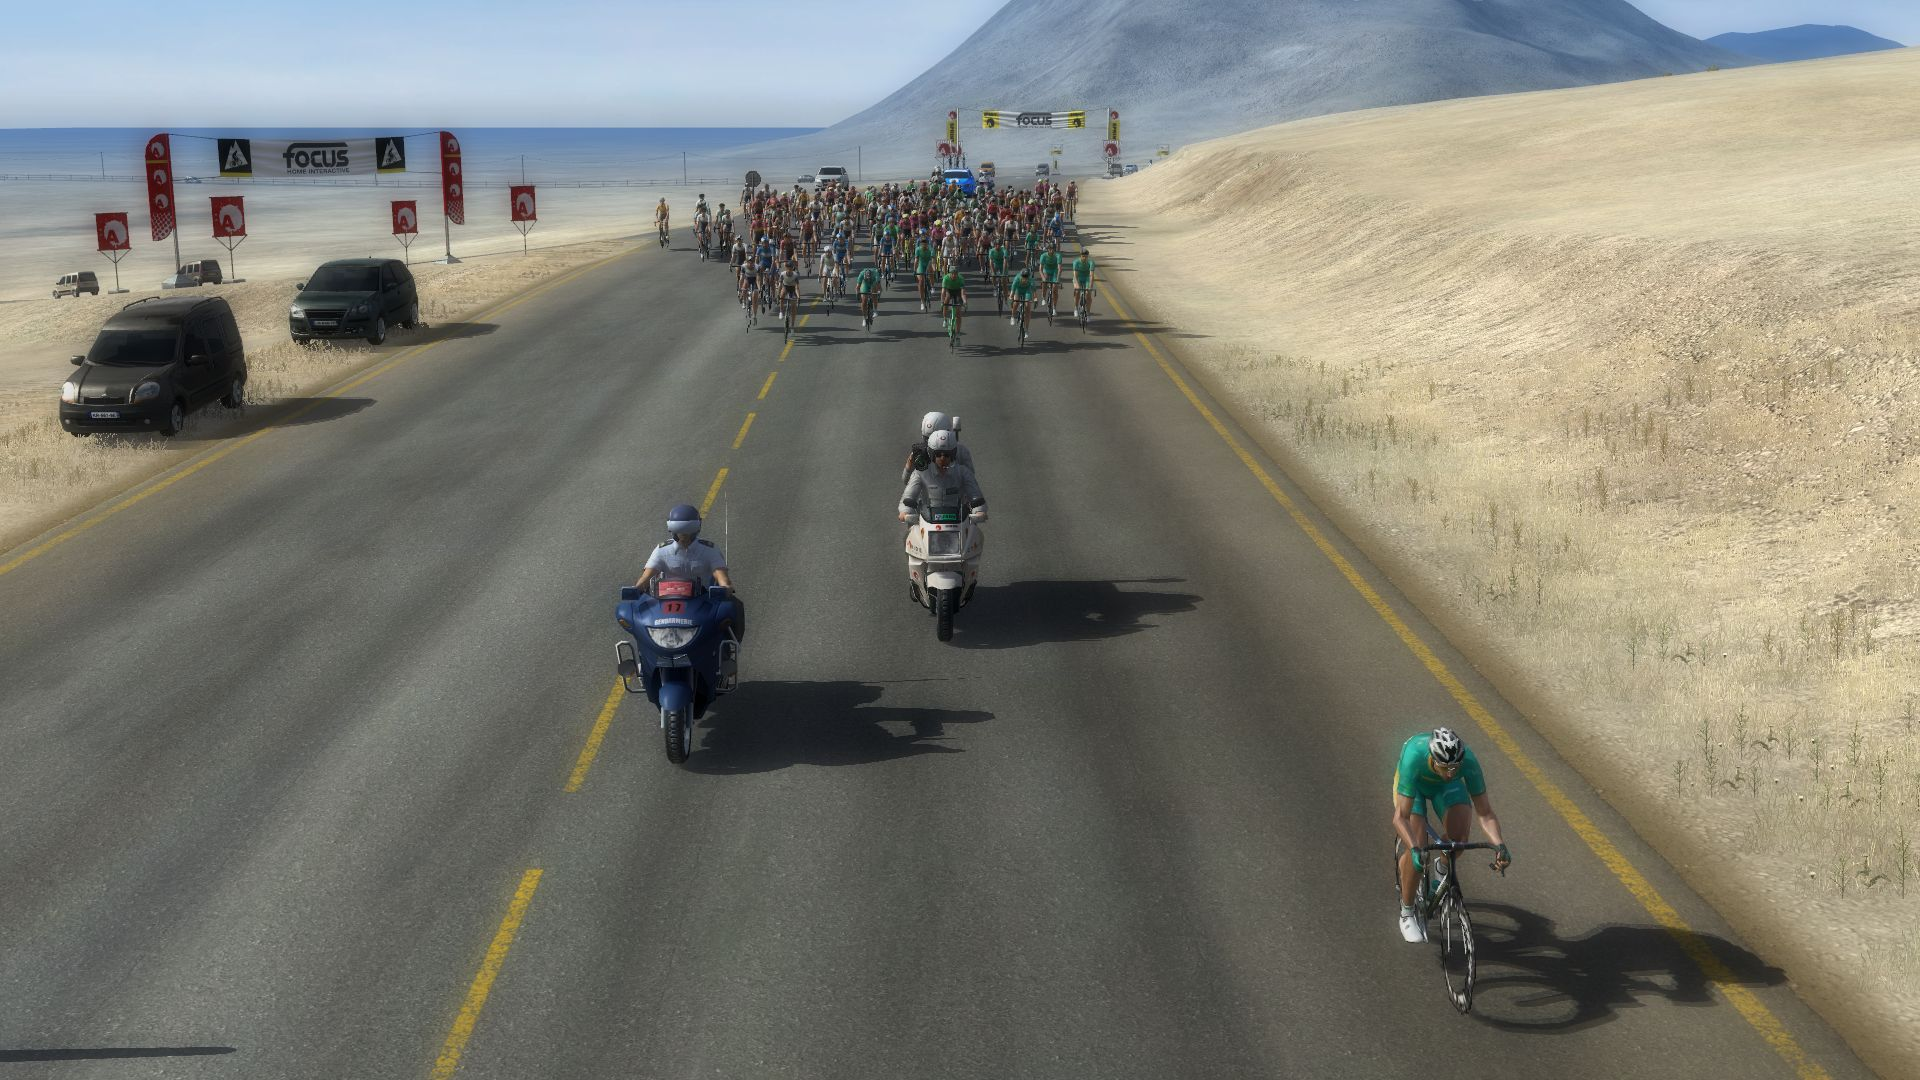 pcmdaily.com/images/mg/2019/Races/C2HC/Eritrea/TOES1%206.jpg